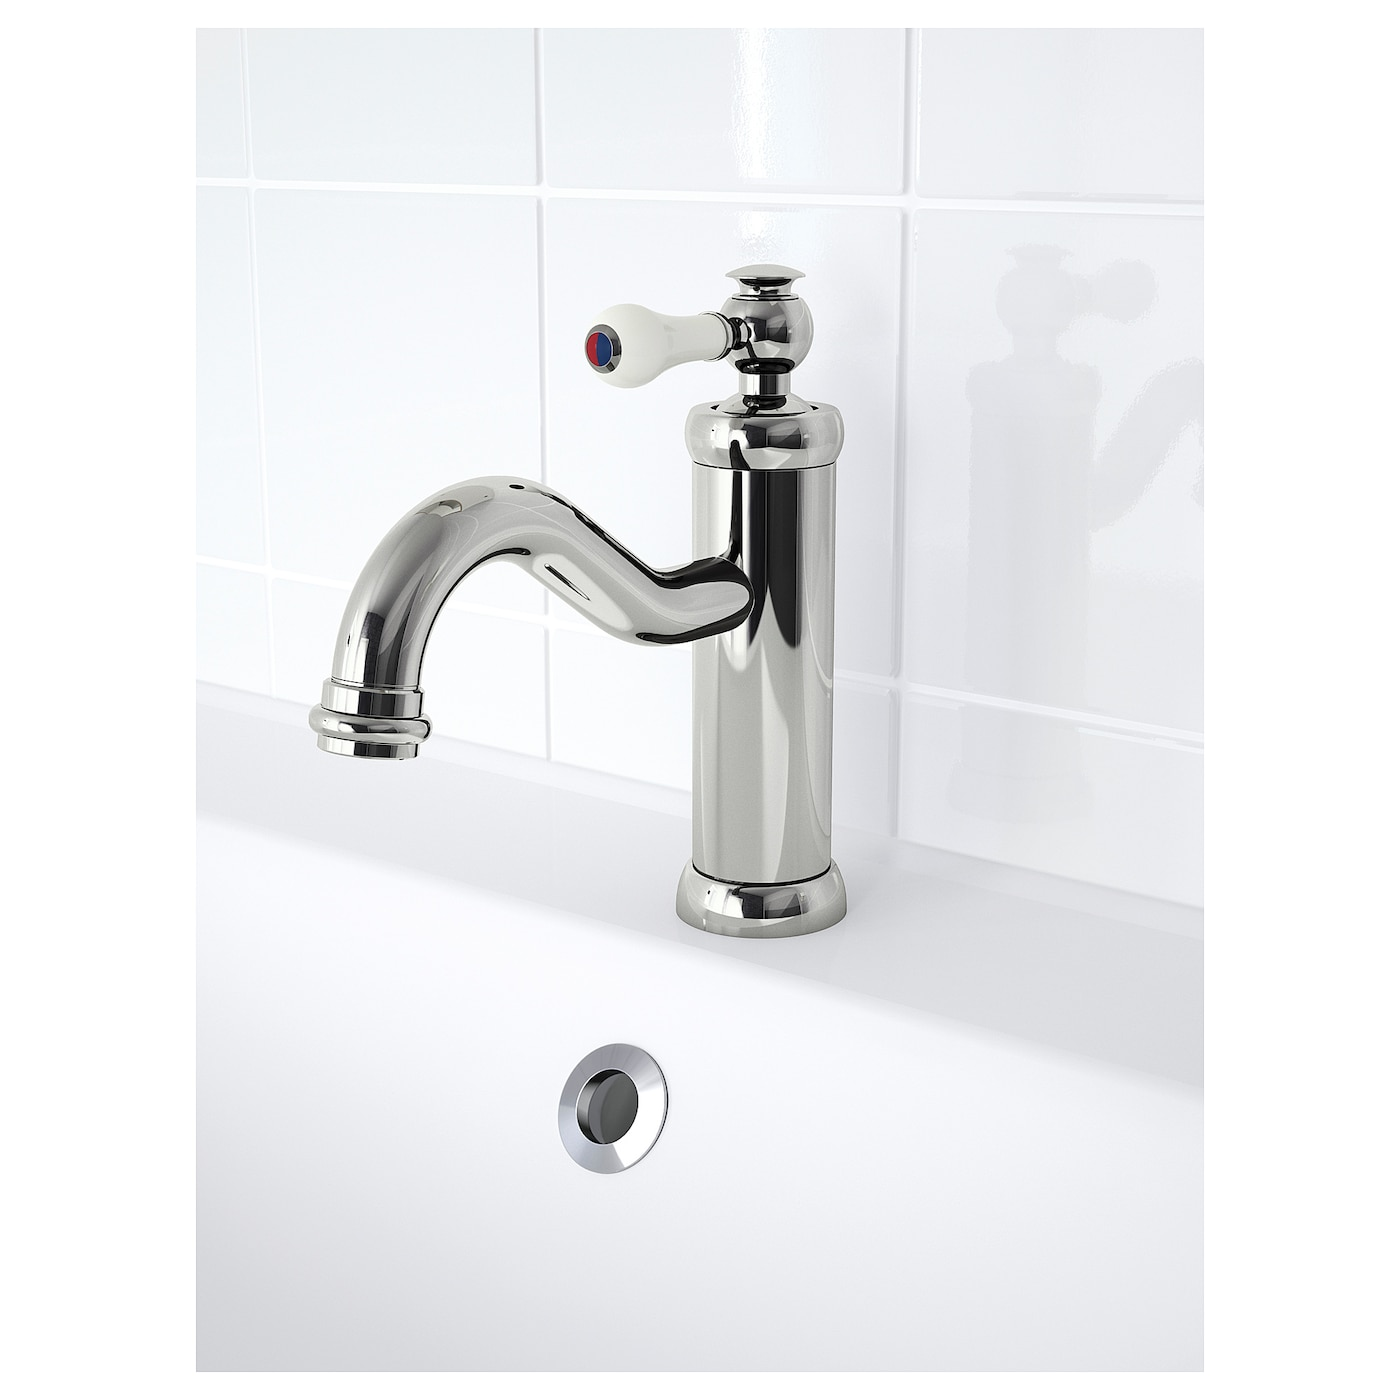 IKEA HAMNSKÄR wash-basin mixer tap with strainer